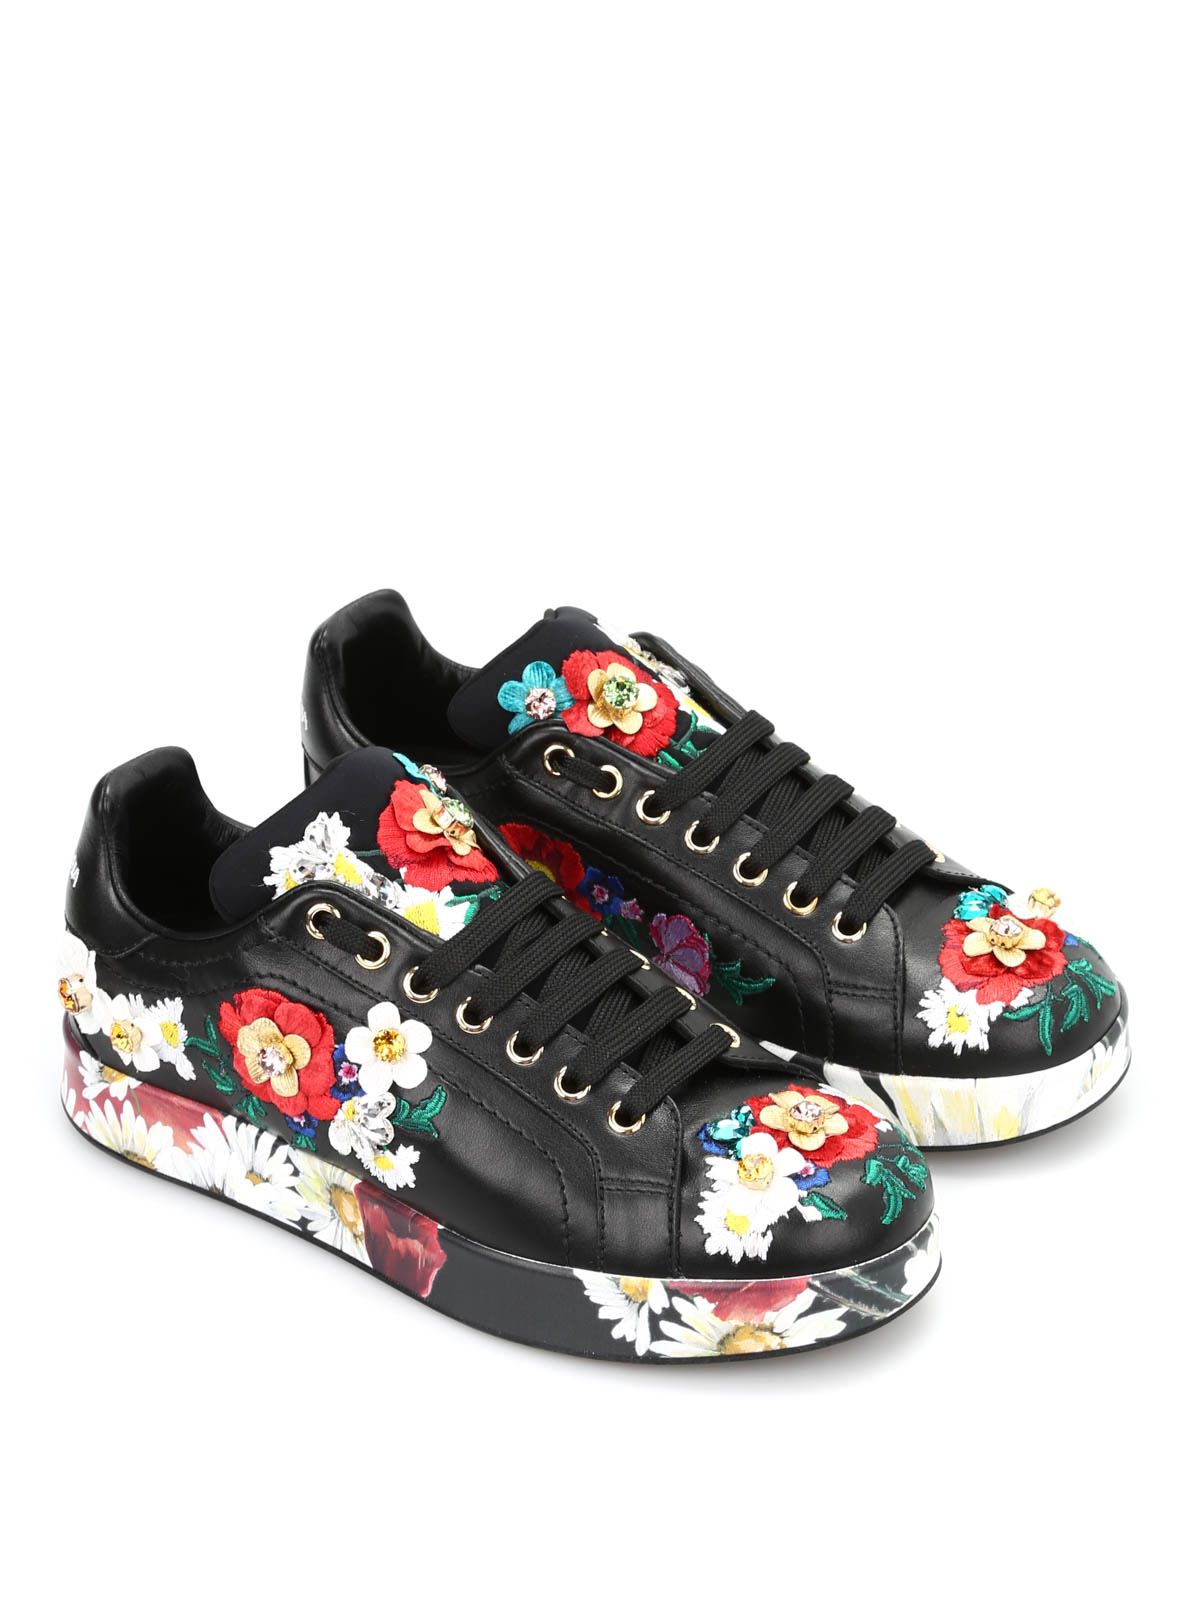 floral embroidered sneakers by dolce gabbana trainers. Black Bedroom Furniture Sets. Home Design Ideas